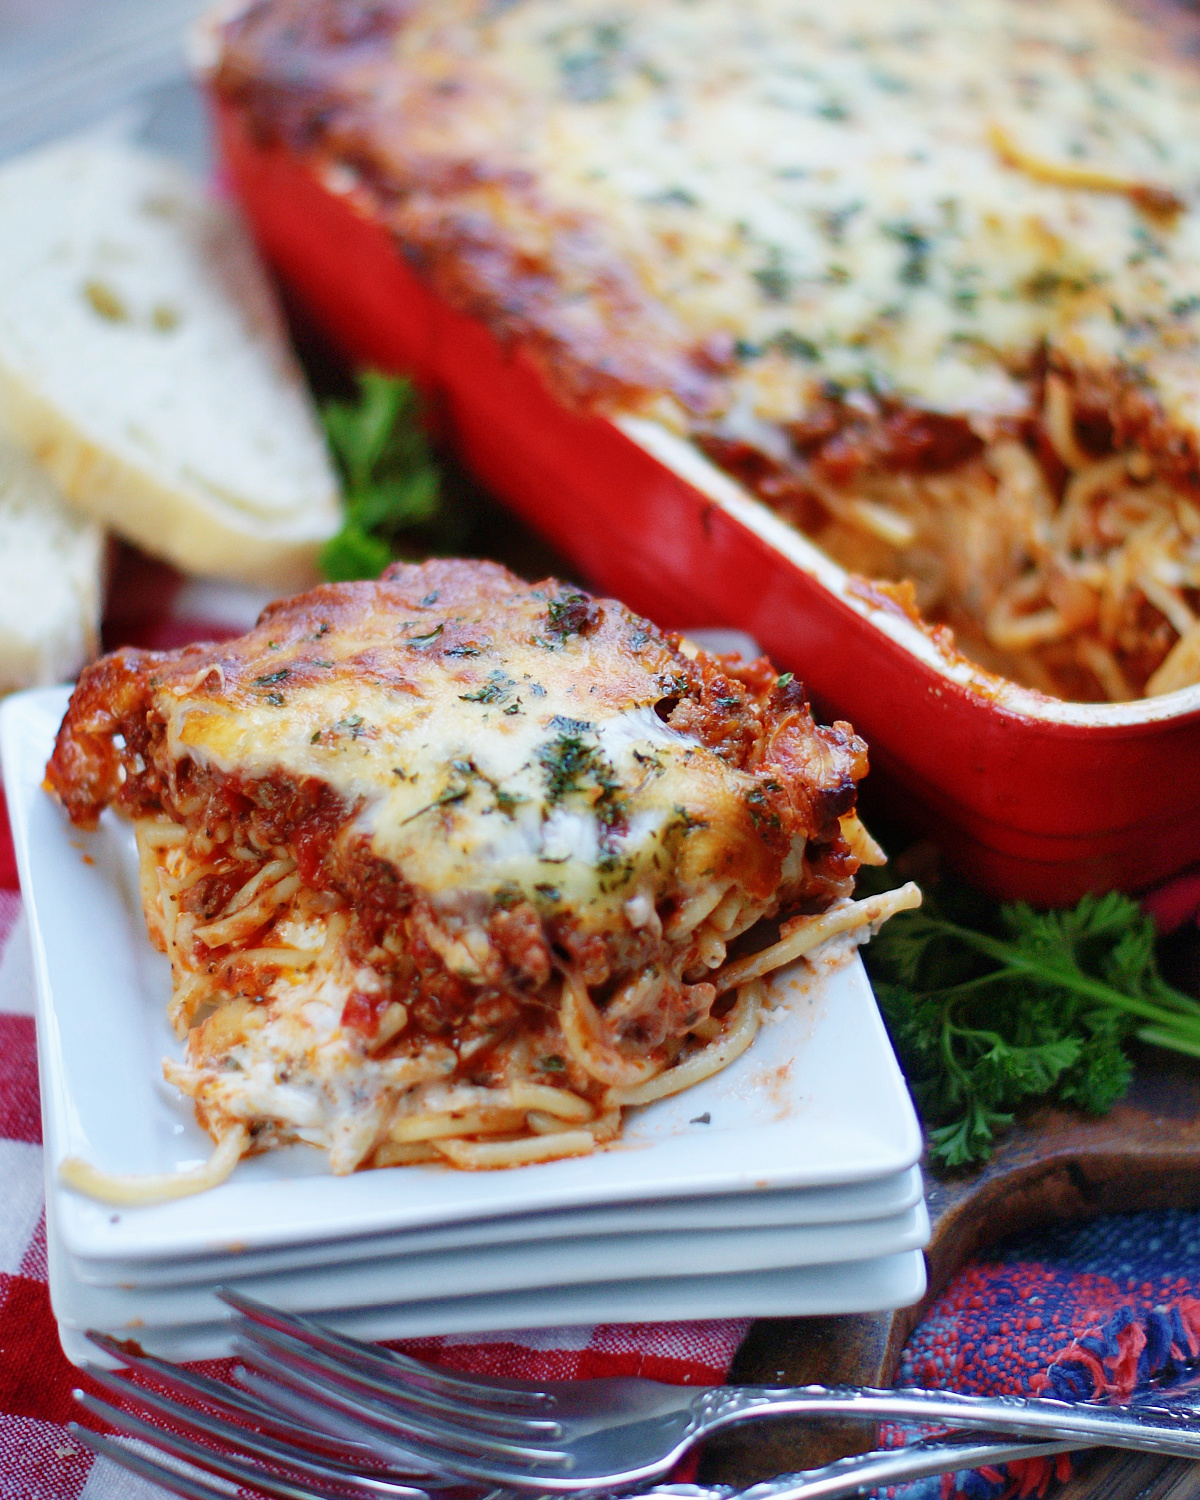 Ultimate Baked Spaghetti Casserole is a layered spaghetti recipe with a creamy cheese center.